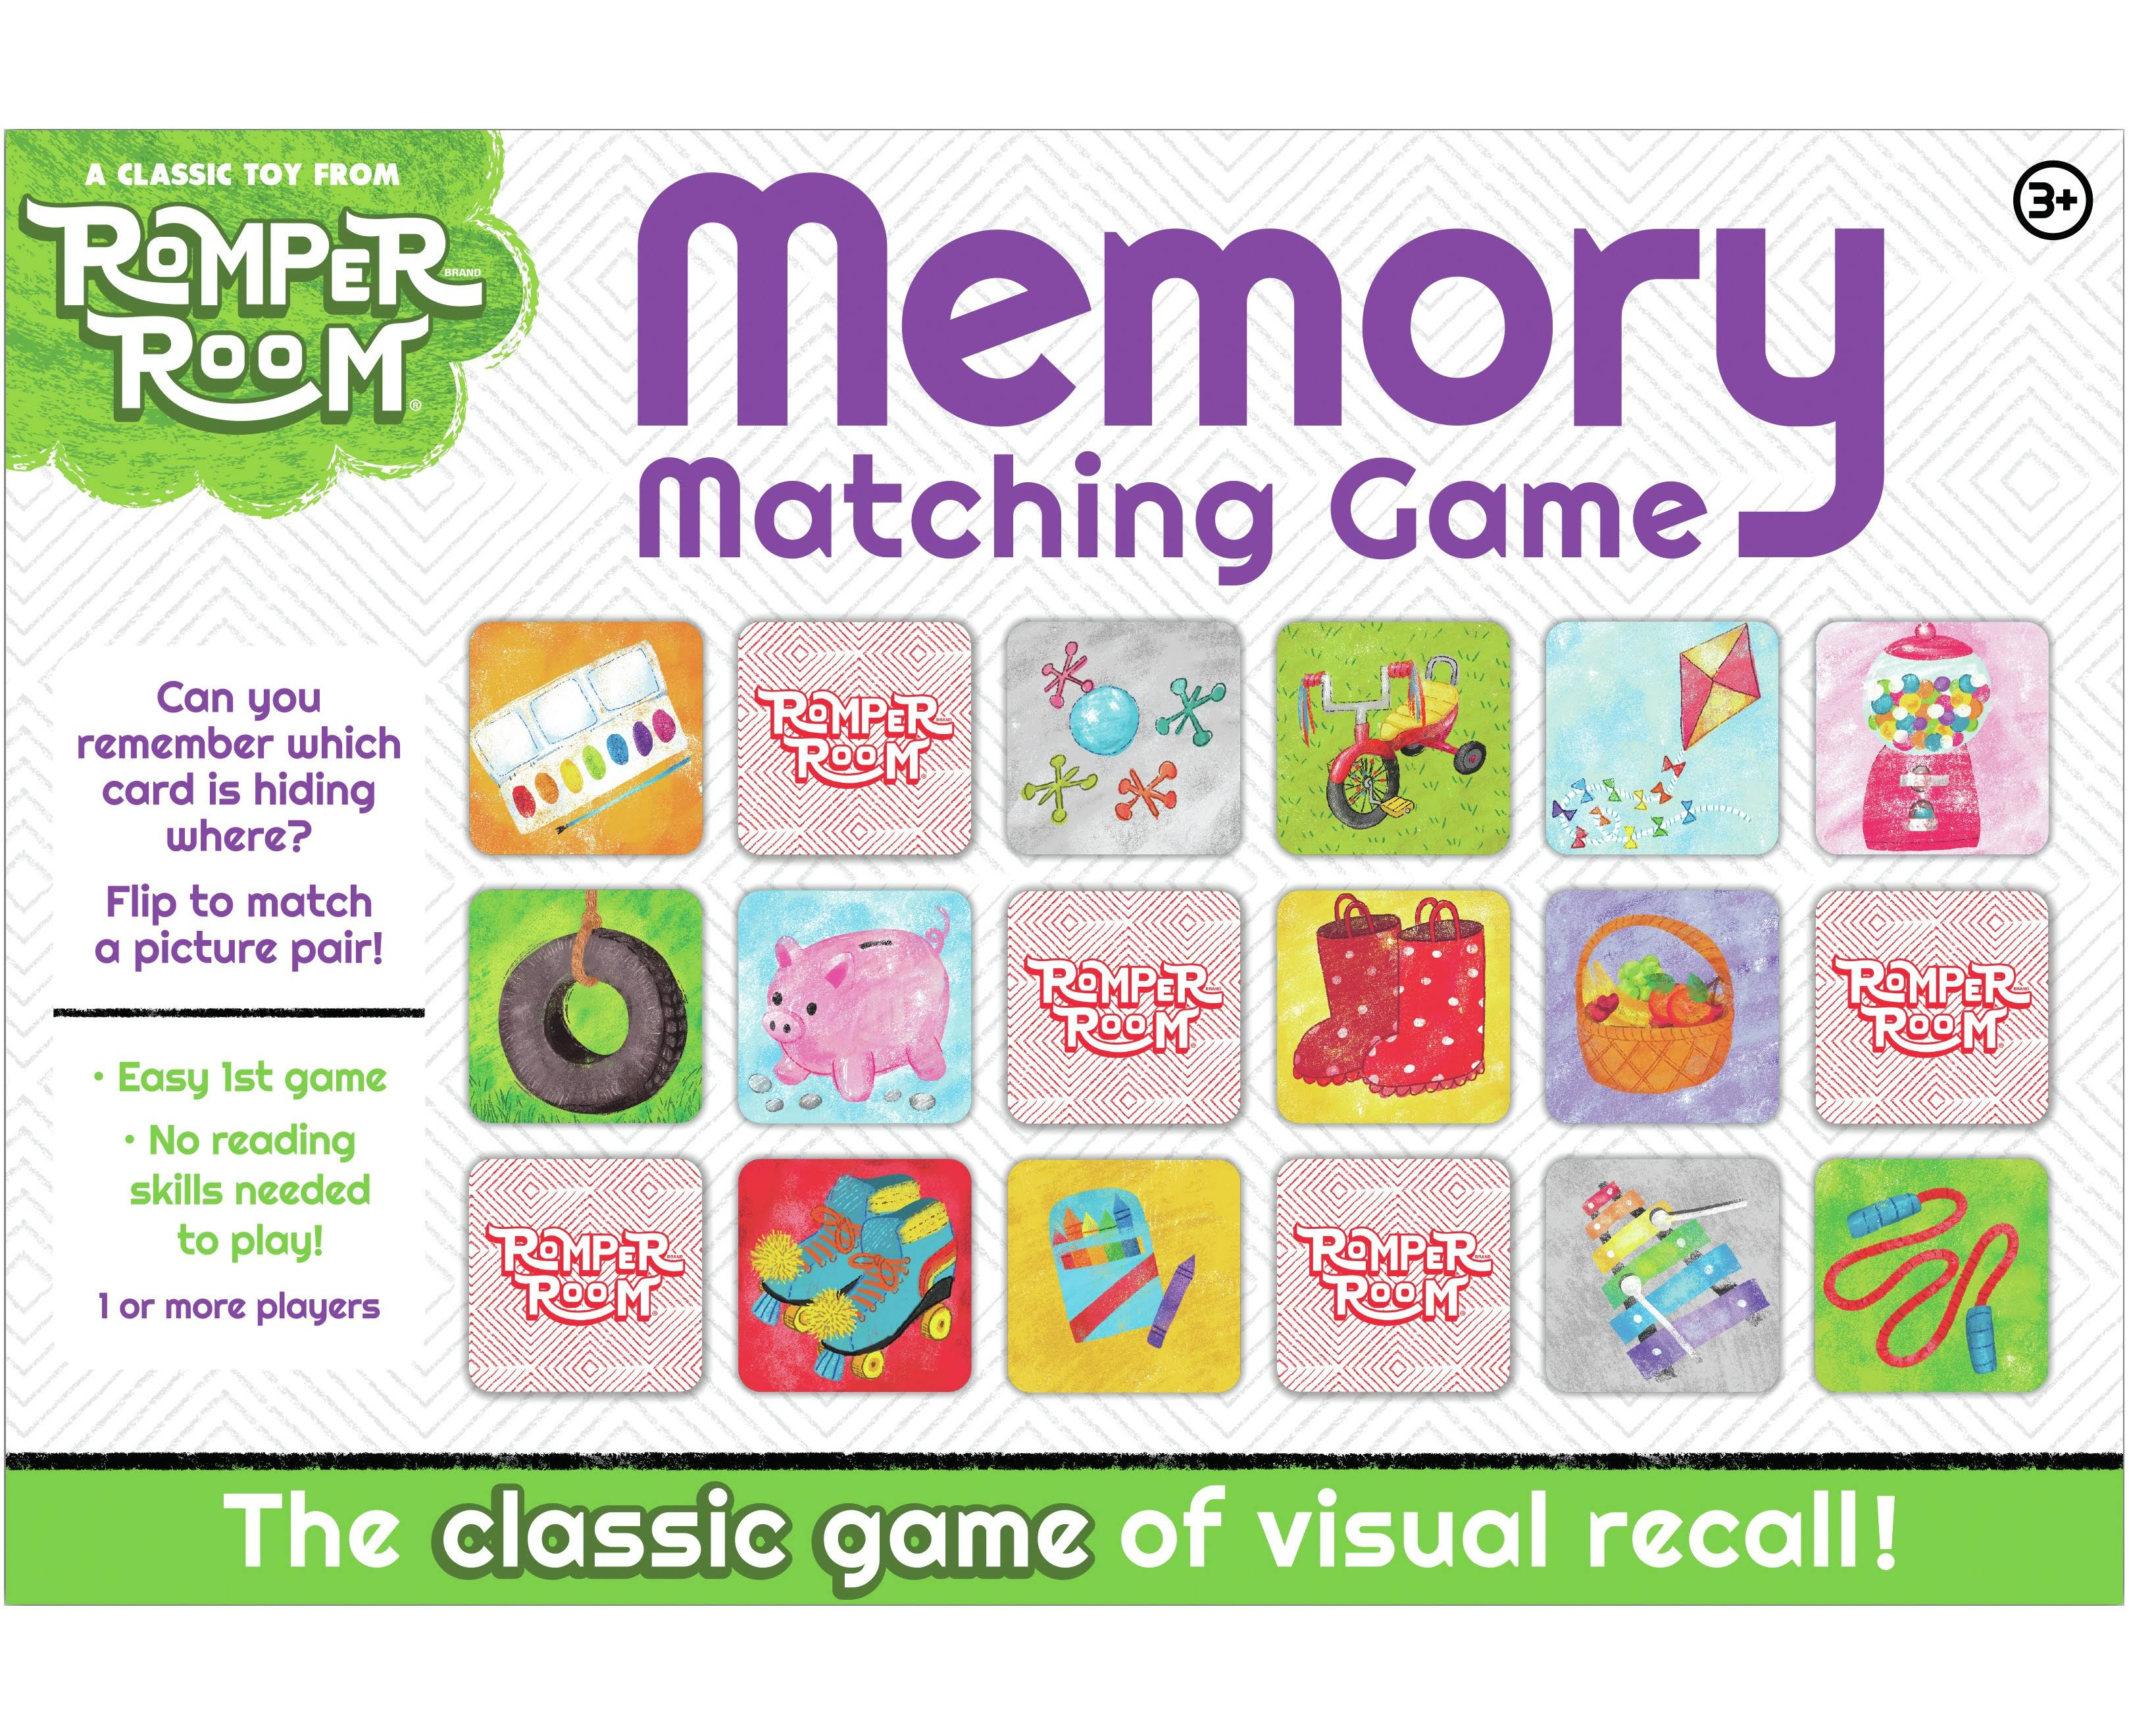 Romper Room Memory Matching Game